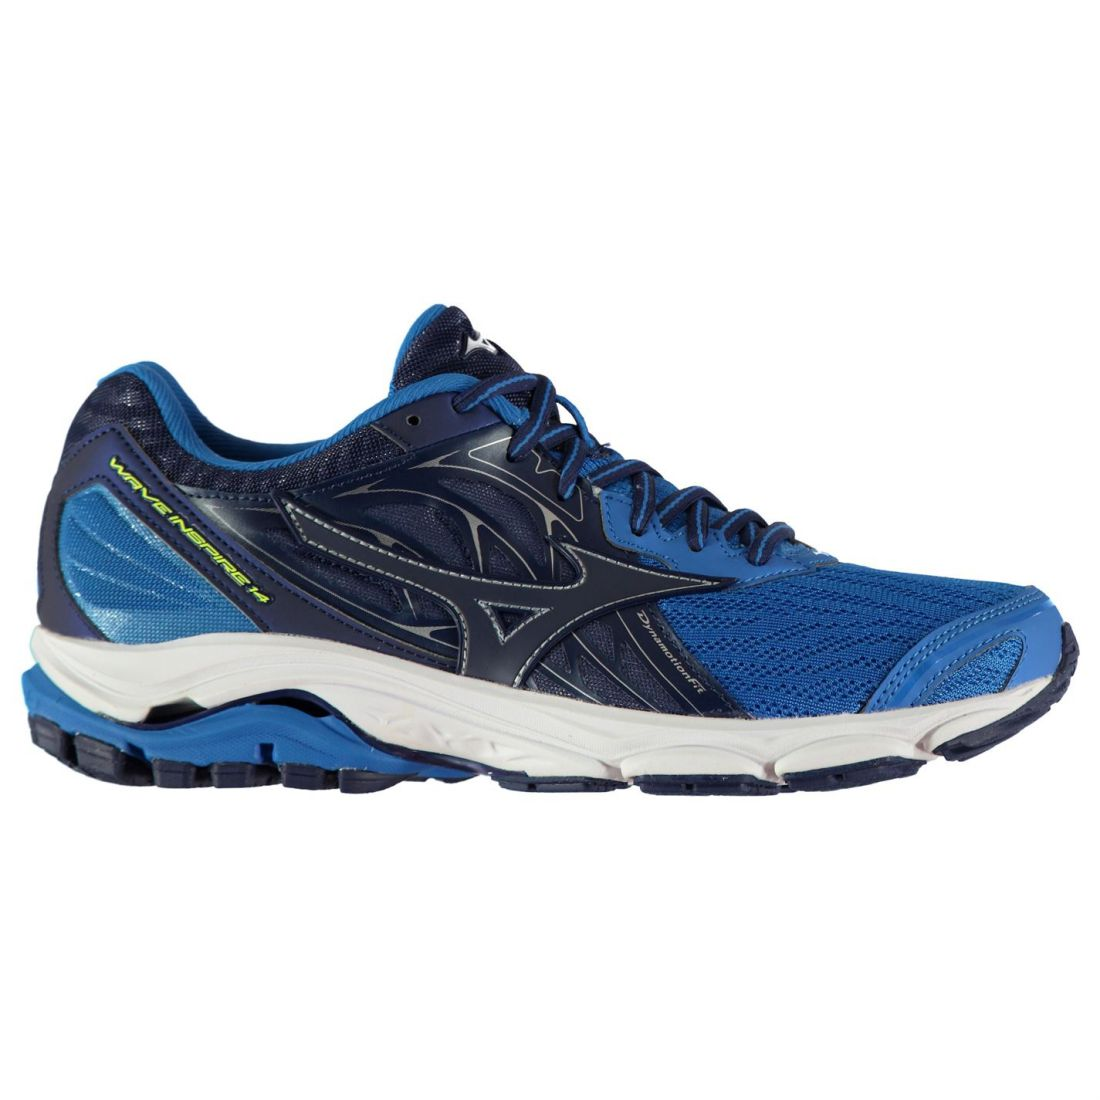 Mizuno Mens Wave Inspire 14 shoes Road Running Lace Up Breathable Padded Ankle